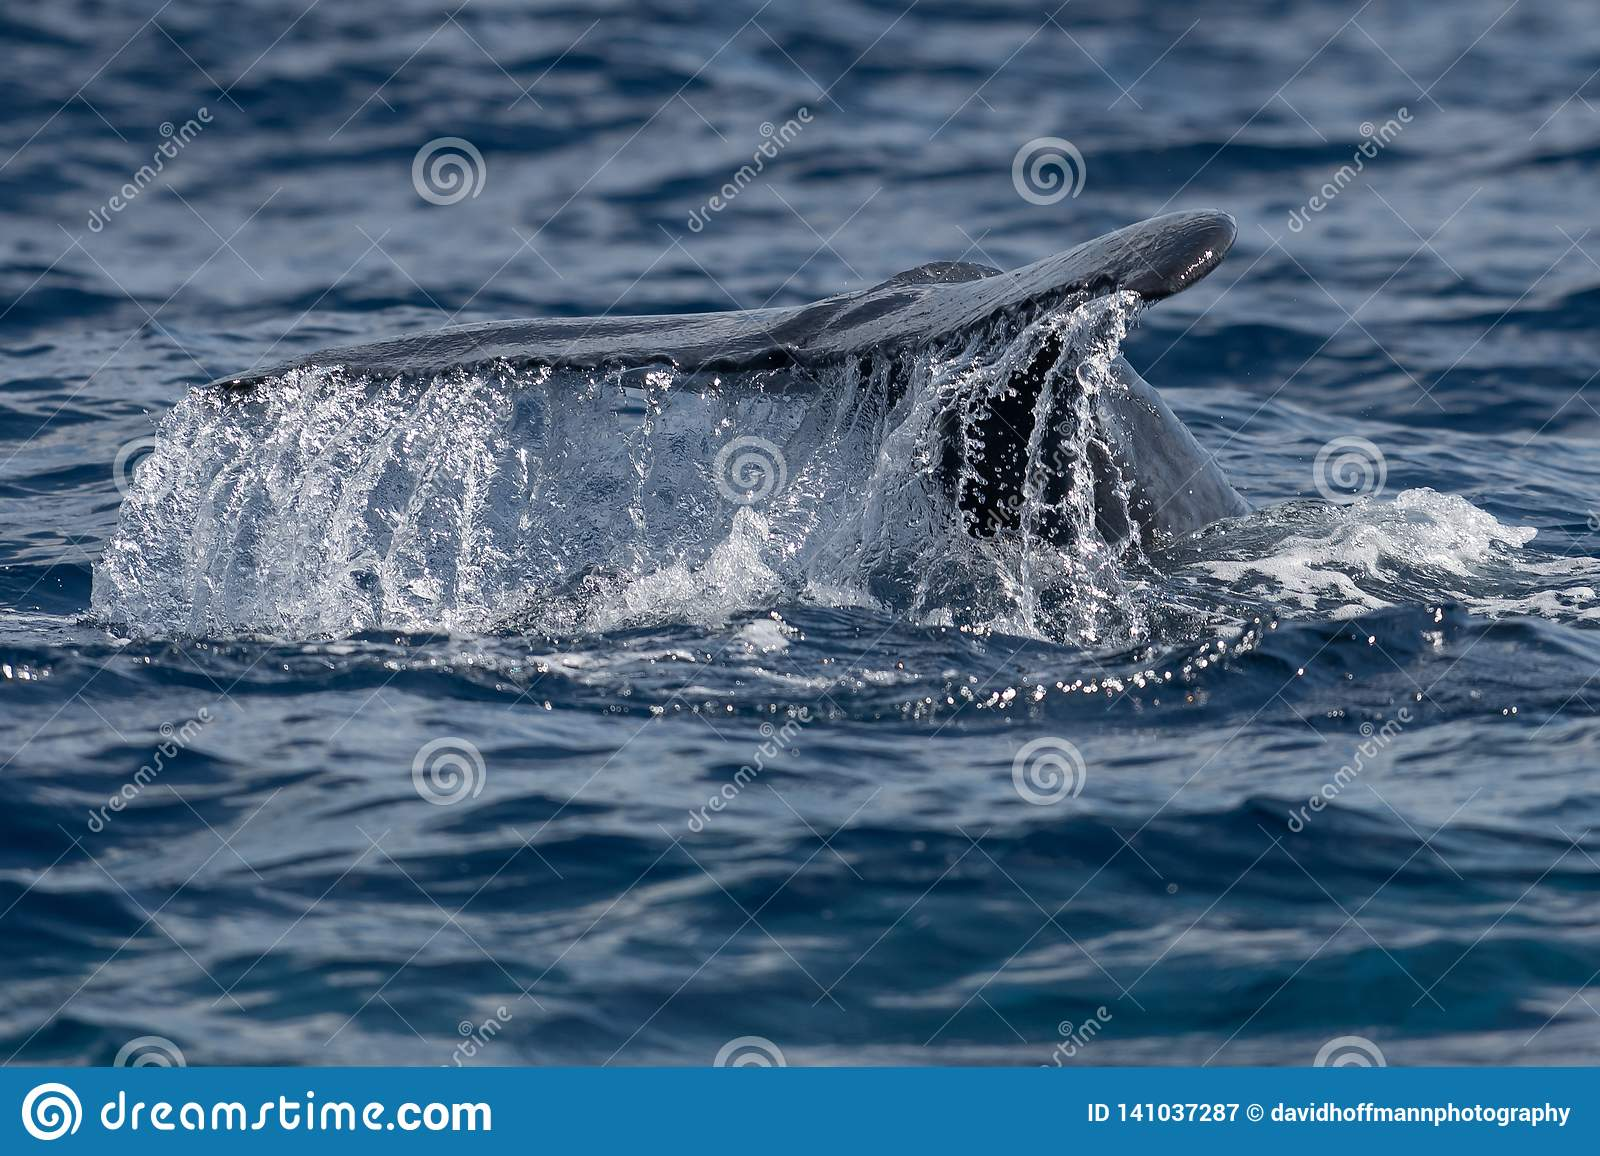 Baby humpback whale tail fluke near Lahaina in Hawaii. Maui, Lahaina, Winter